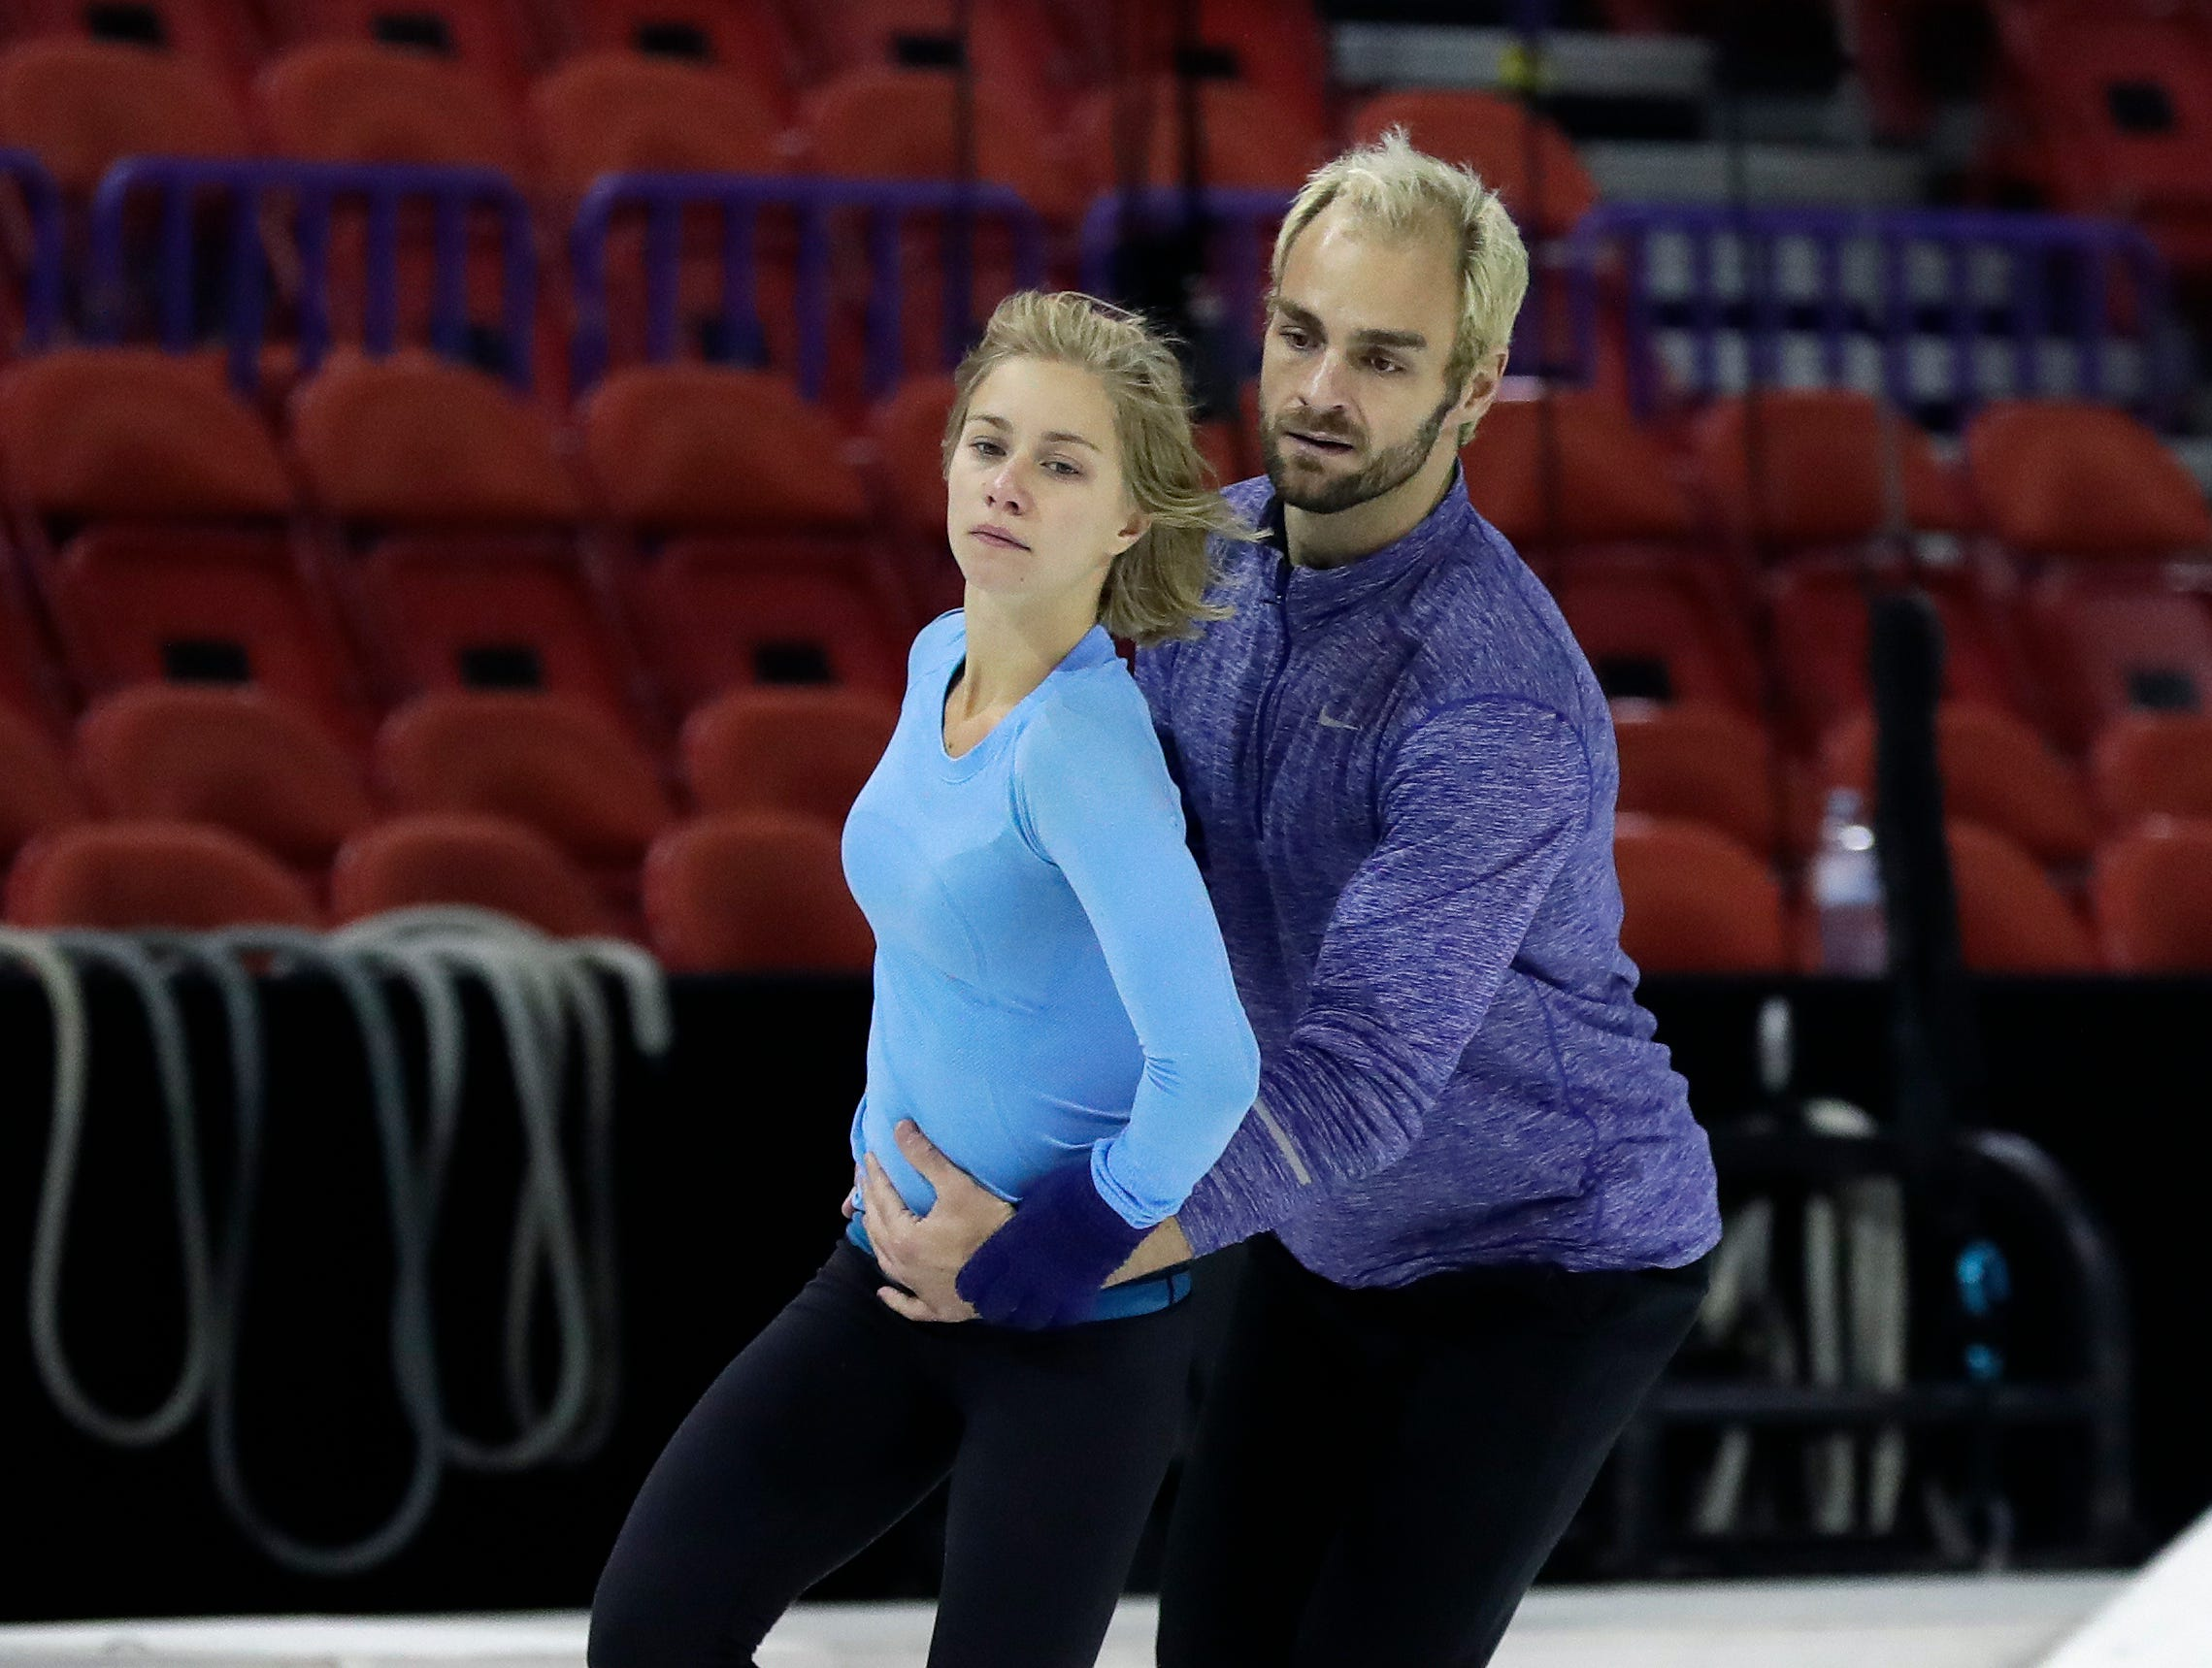 """Cirque du Soleil's """"Crystal"""" performers practice skating before the first performance Oct. 11, 2018 at the Resch Center in Ashwaubenon, Wis."""